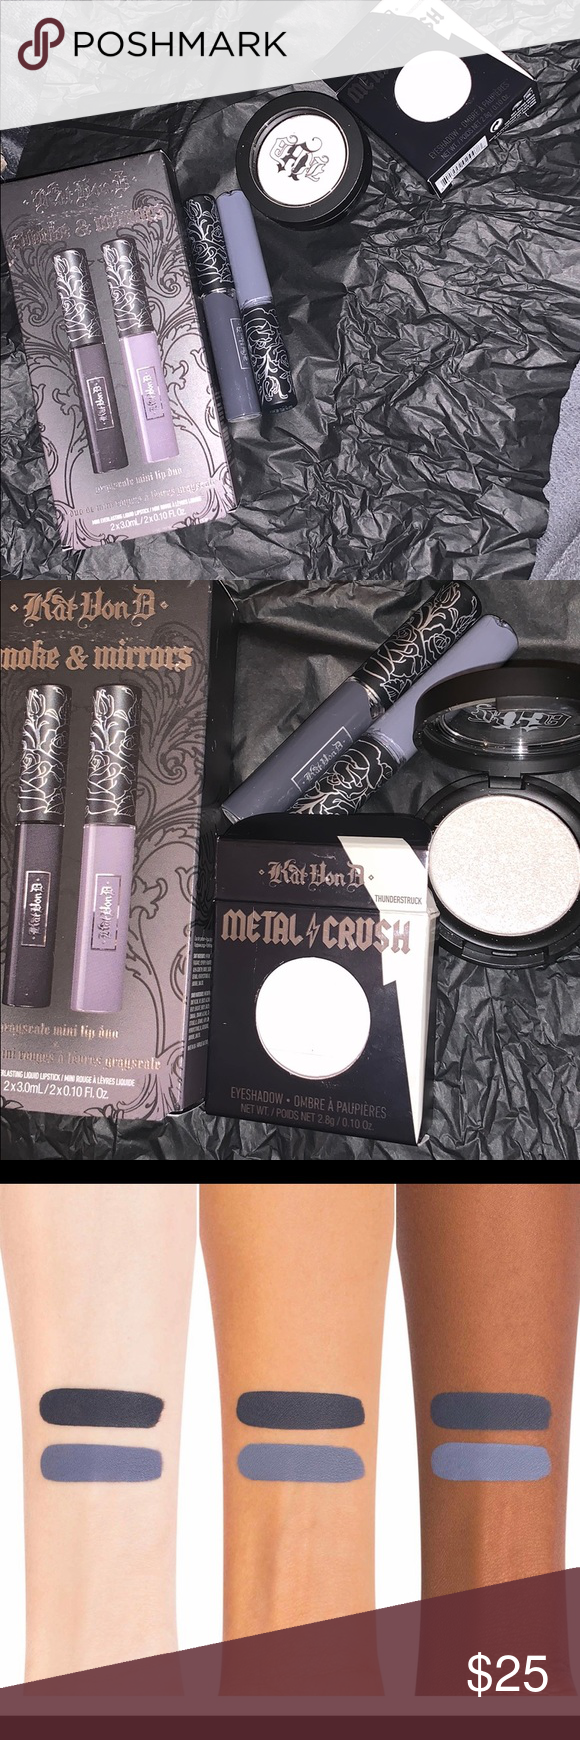 Brand new Kat Von D makeup Trial size of the smoke and